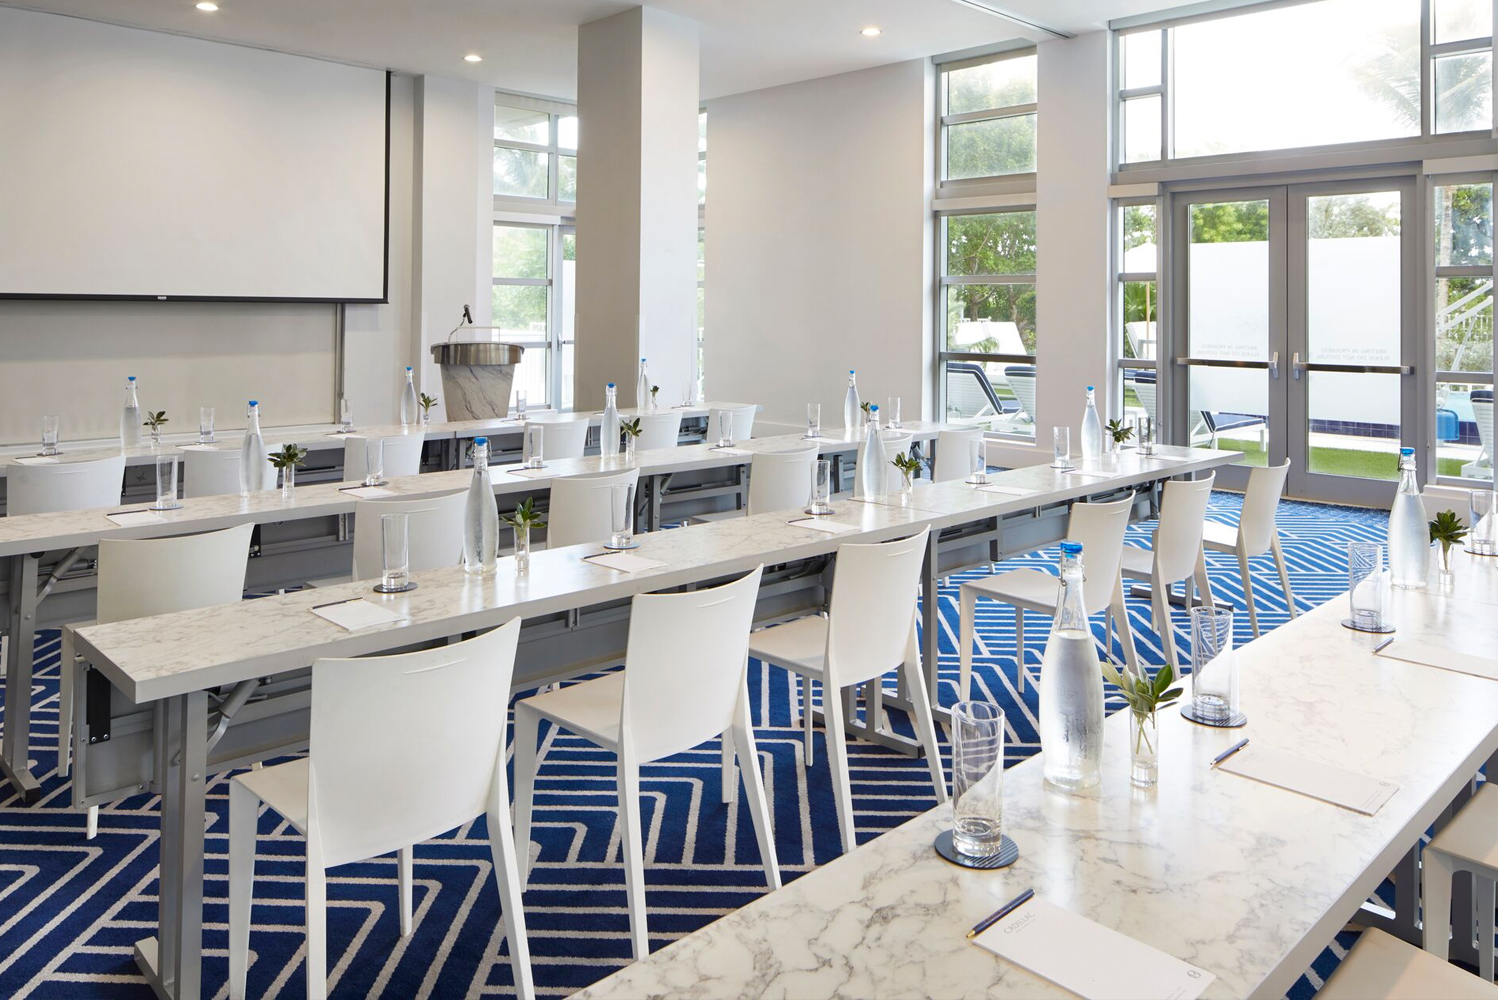 Miami Beach's newly opened Cadillac Hotel & Beach Club debuted over 11,000-square-feet of indoor and outdoor flexible meeting and gathering spaces.